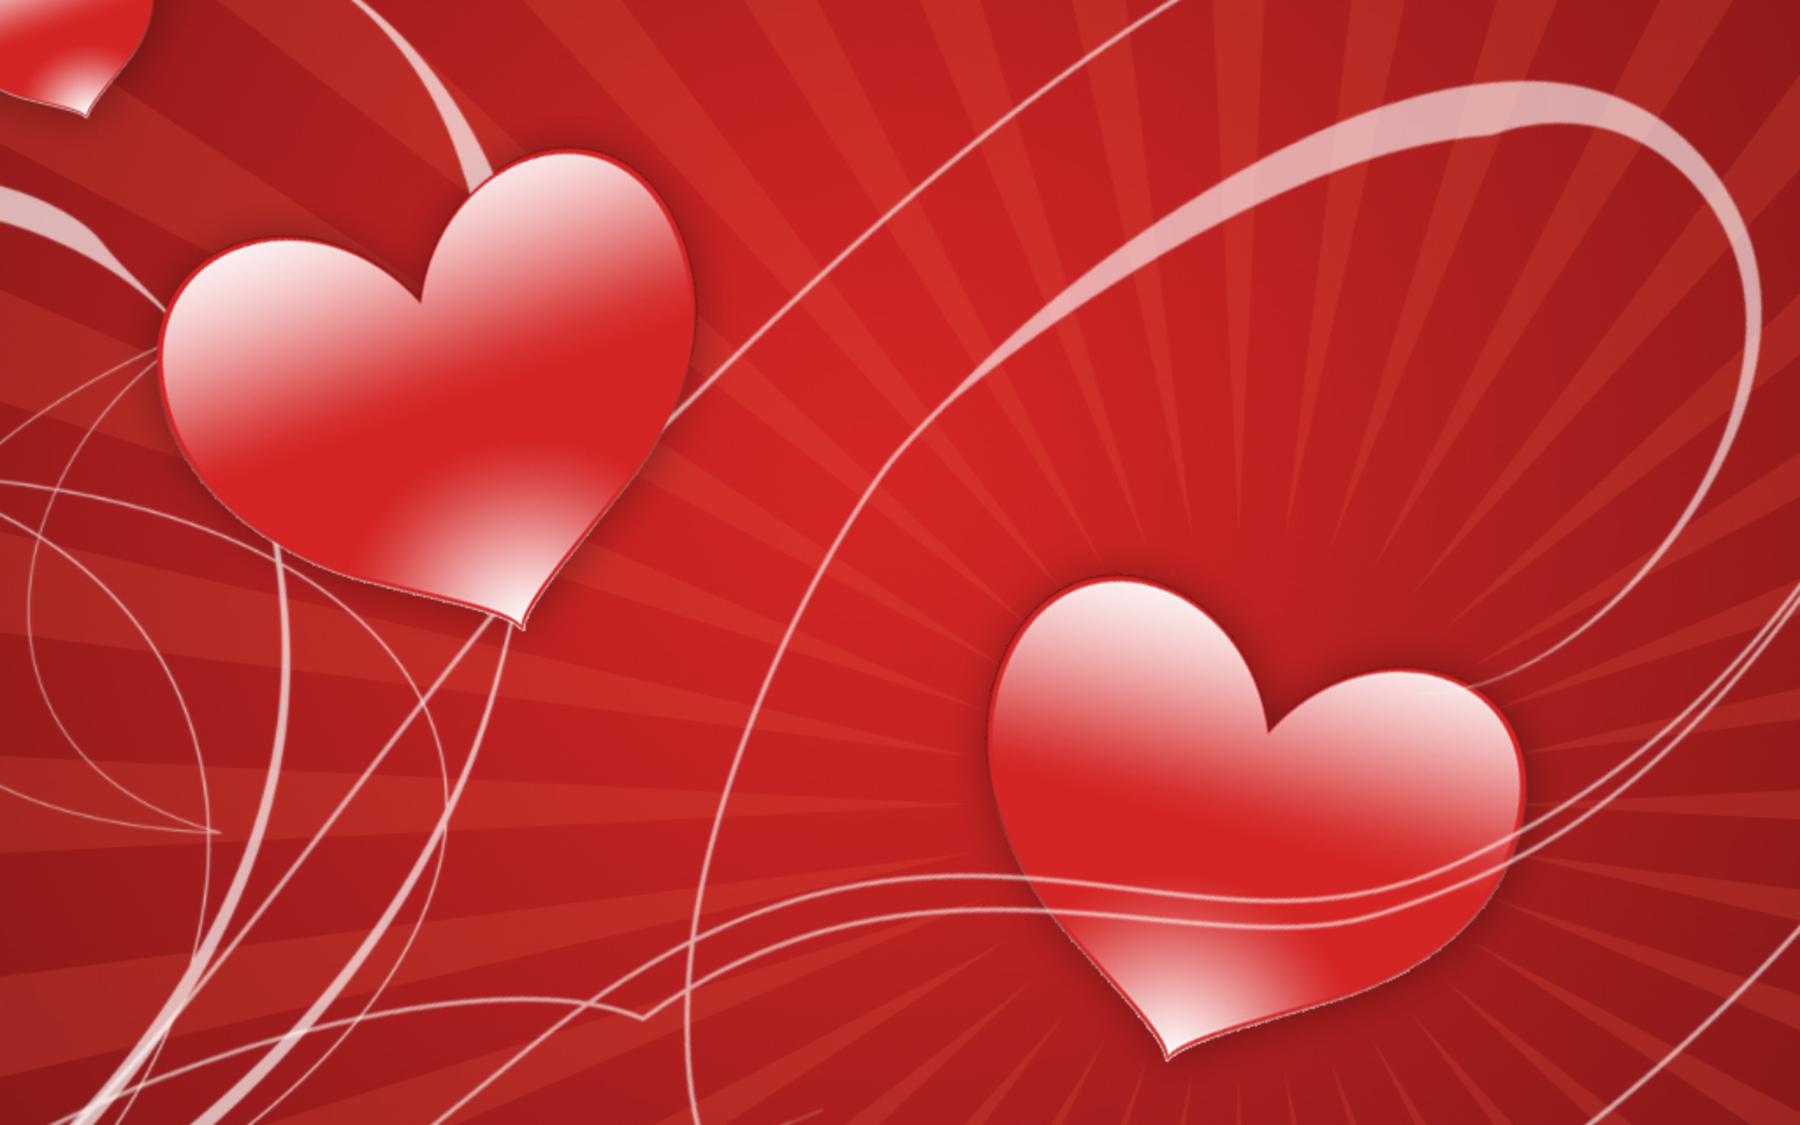 Red Love Heart Wallpaper Images amp Pictures   Becuo 1800x1125